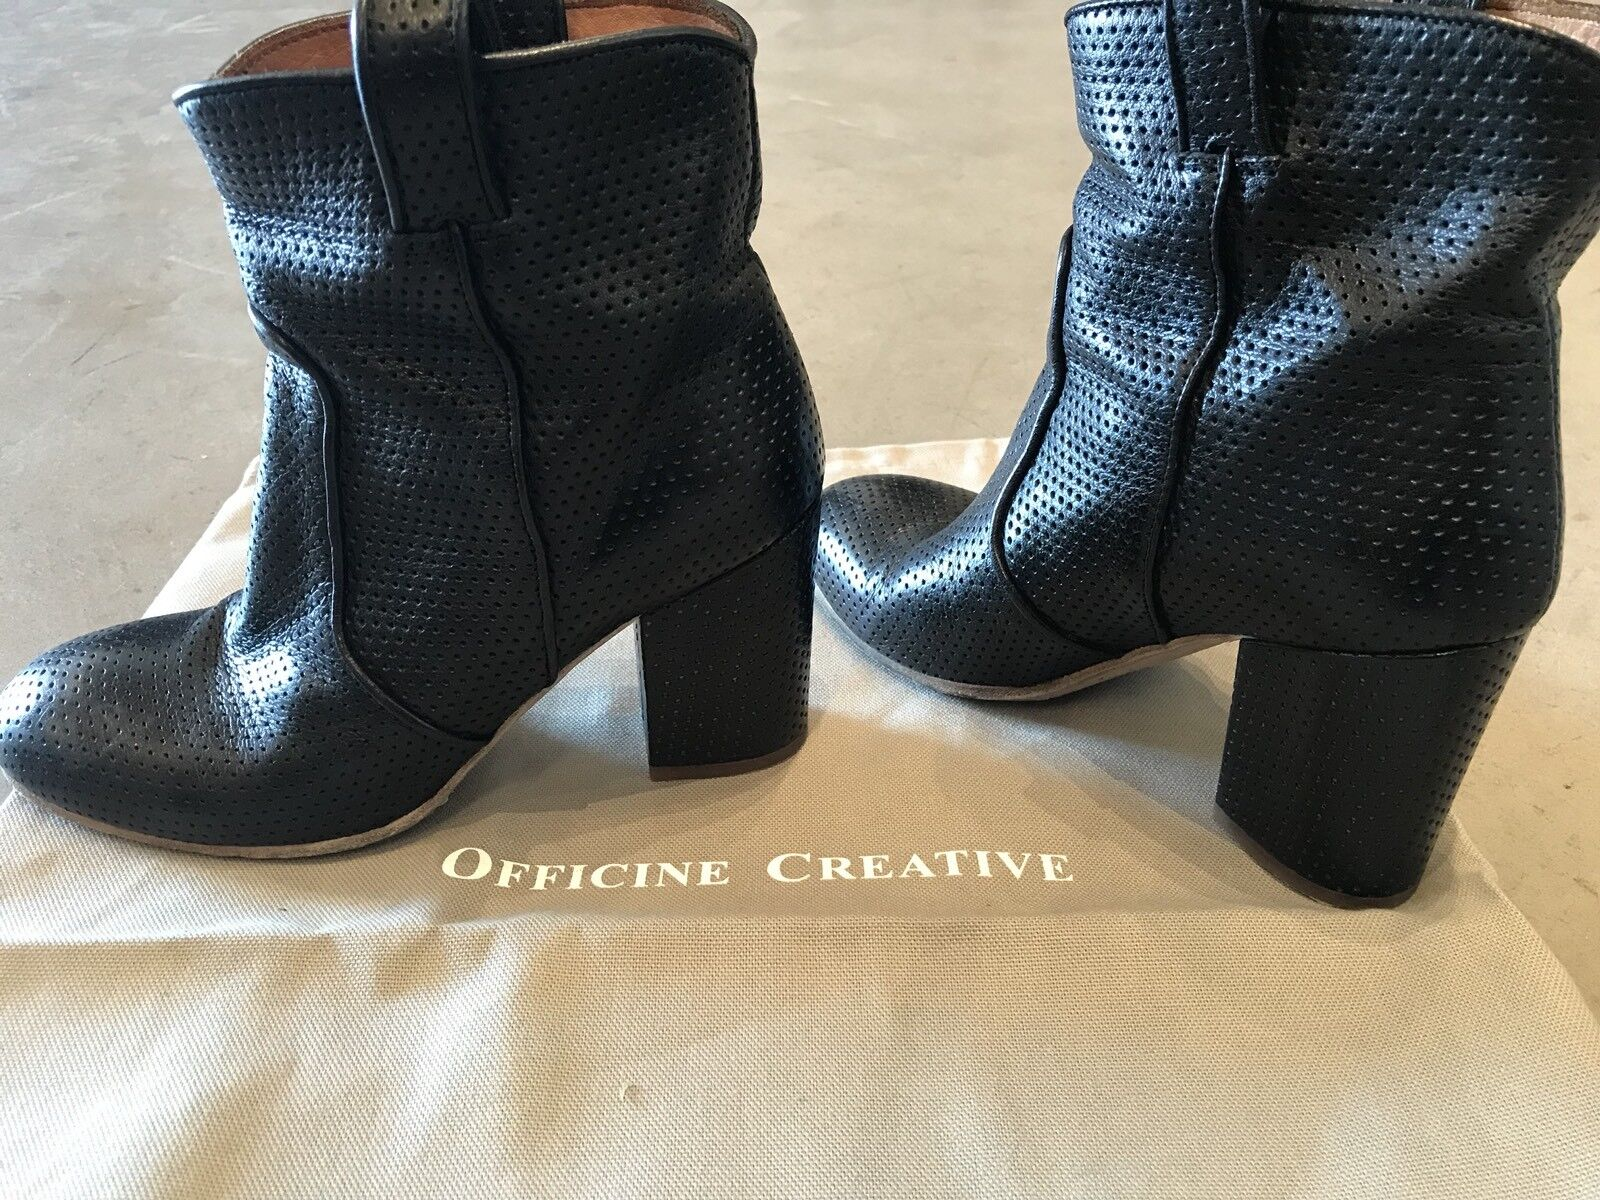 680 OFFICINE CREATIVE Perforated Leather Boots SZ 36.5  US 7 Black shoes RARE